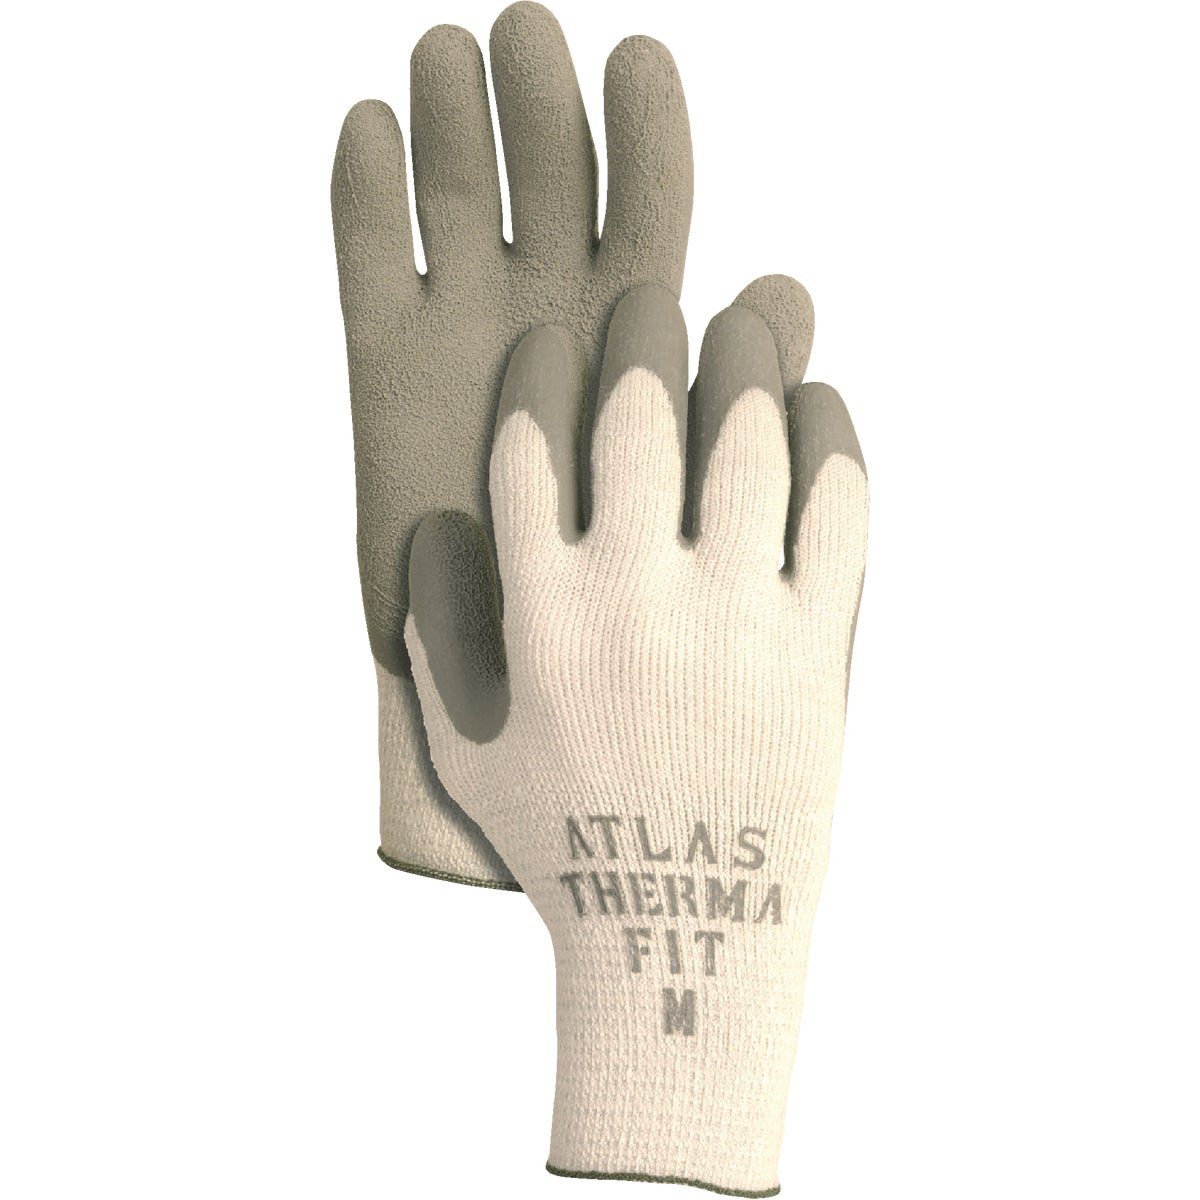 SML THRMA PALM DIP GLOVE - 451S-07.RT by Showa Best Glove